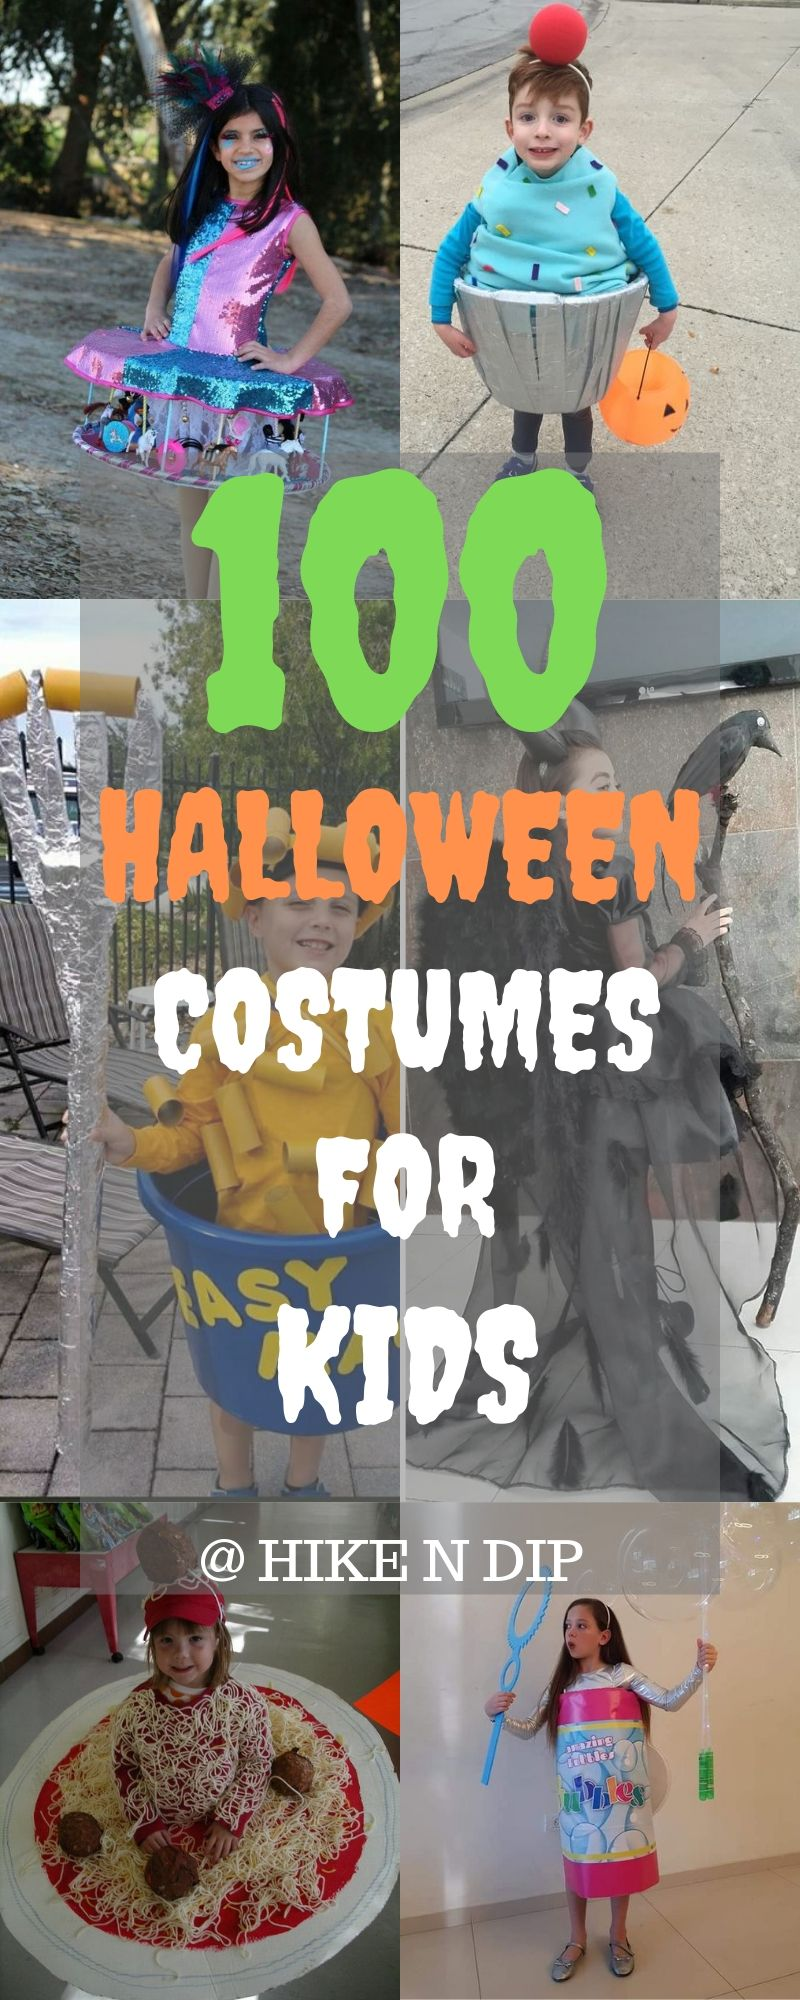 Top Halloween Costumes For Kids In 2020 100 Cool DIY Halloween Costume for Kids for 2020   Hike n Dip